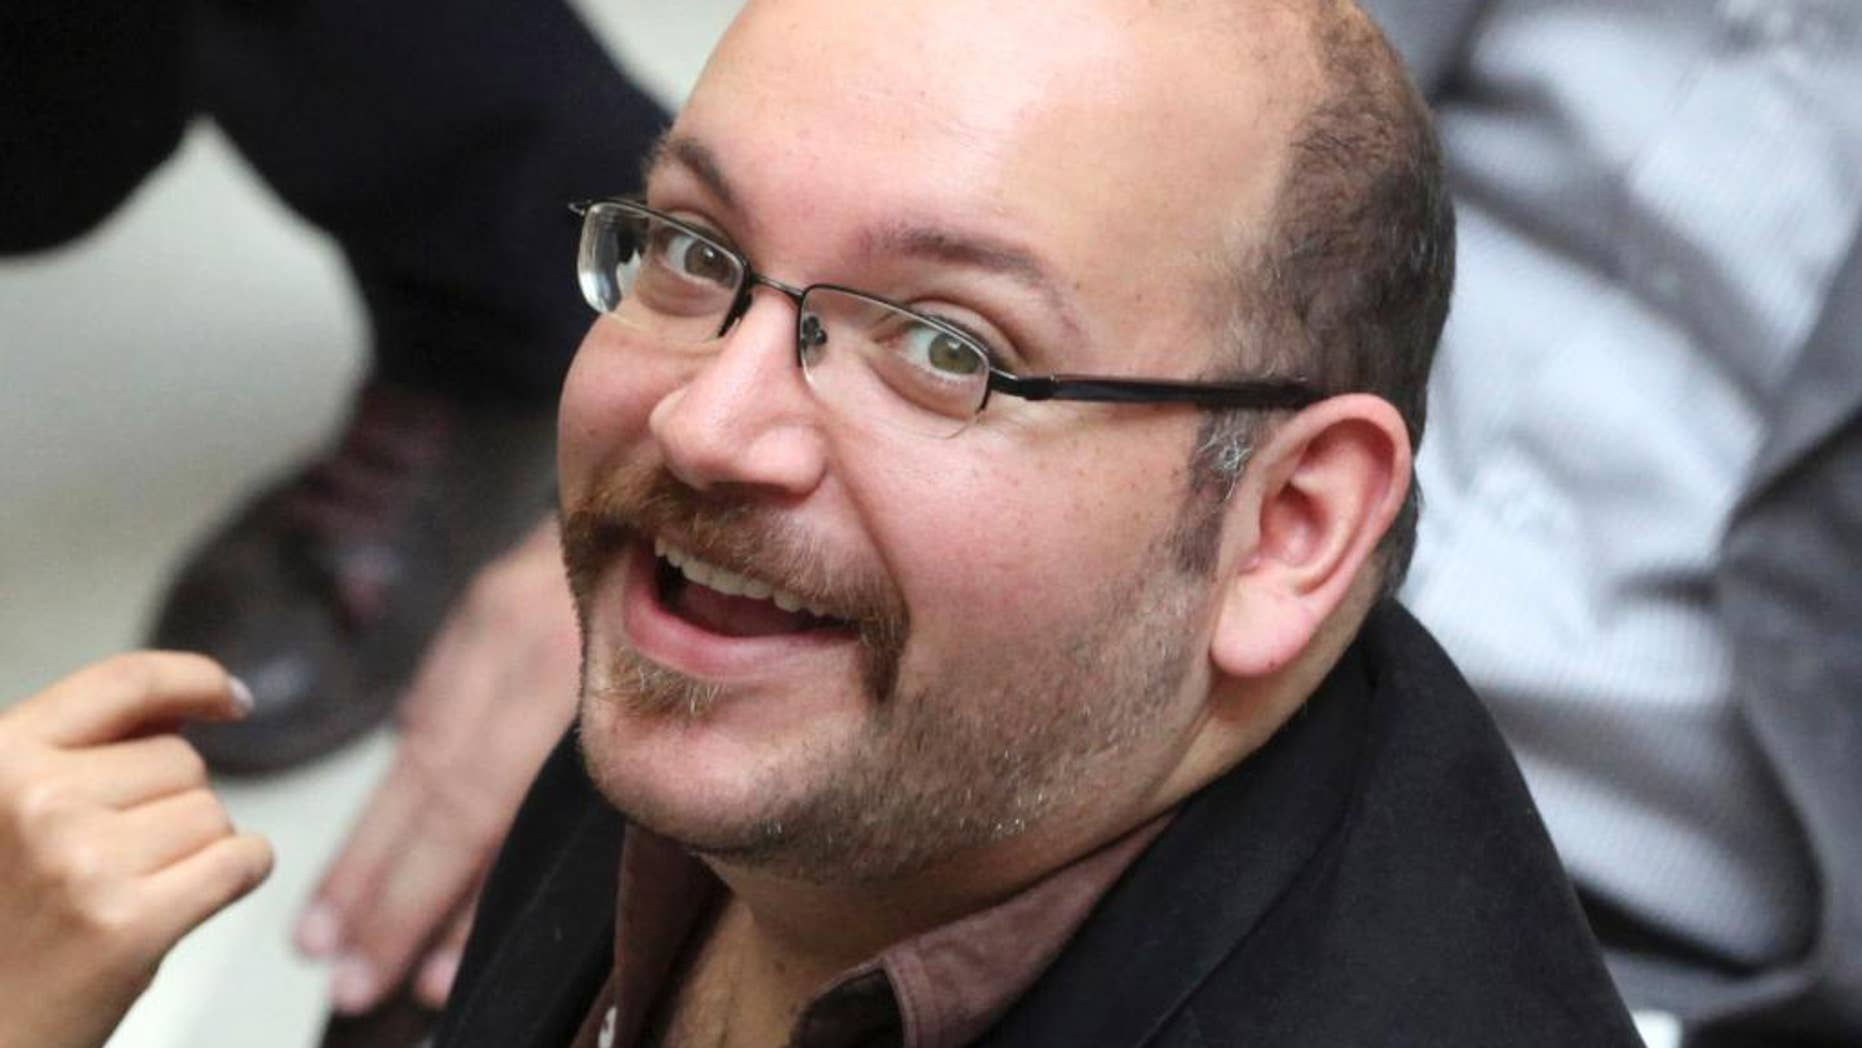 FILE - In this photo April 11, 2013 file photo, Jason Rezaian, an Iranian-American correspondent for the Washington Post, smiles as he attends a presidential campaign of President Hassan Rouhani in Tehran, Iran. Iran's official IRNA news agency reported that the verdict against Rezaian has been issued. Rezaian, the Post's Tehran bureau chief, is accused of charges including espionage in a closed-door trial that has been widely criticized by the U.S. government and press freedom organizations. (AP Photo/Vahid Salemi, File)